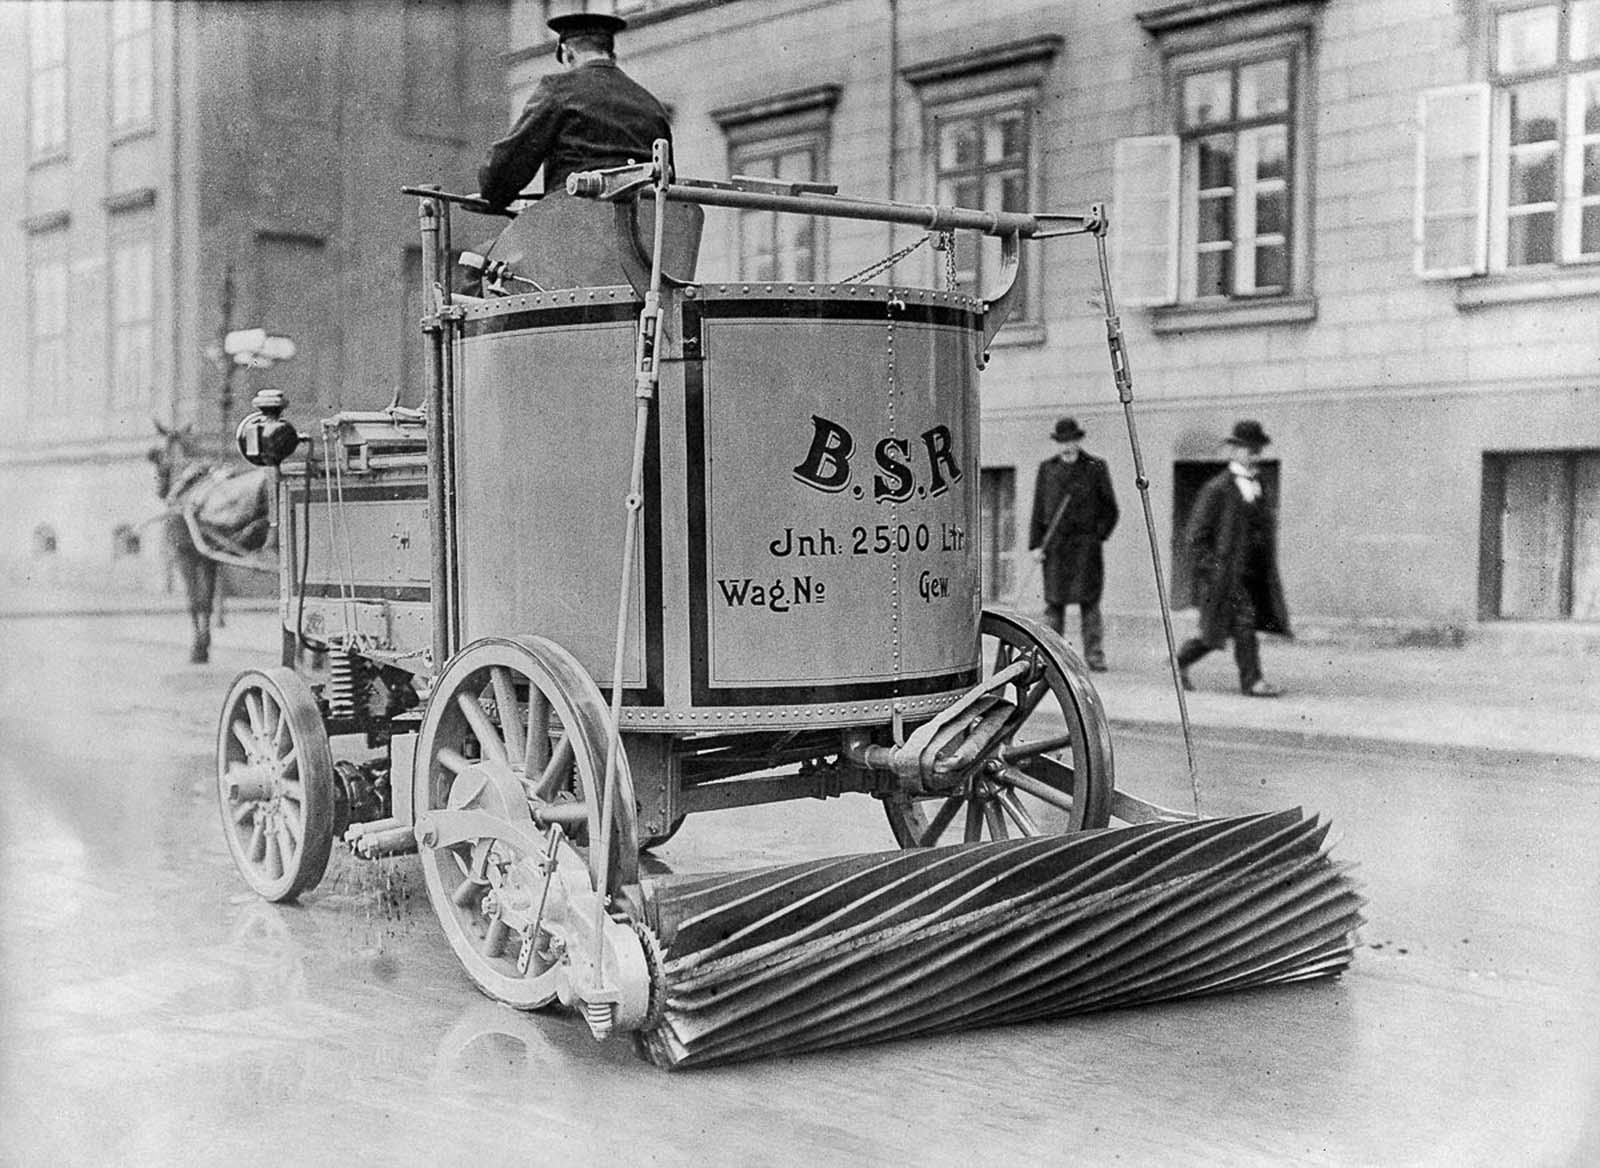 An electric street sweeper cleans the roadway in Berlin, Germany. 1907.